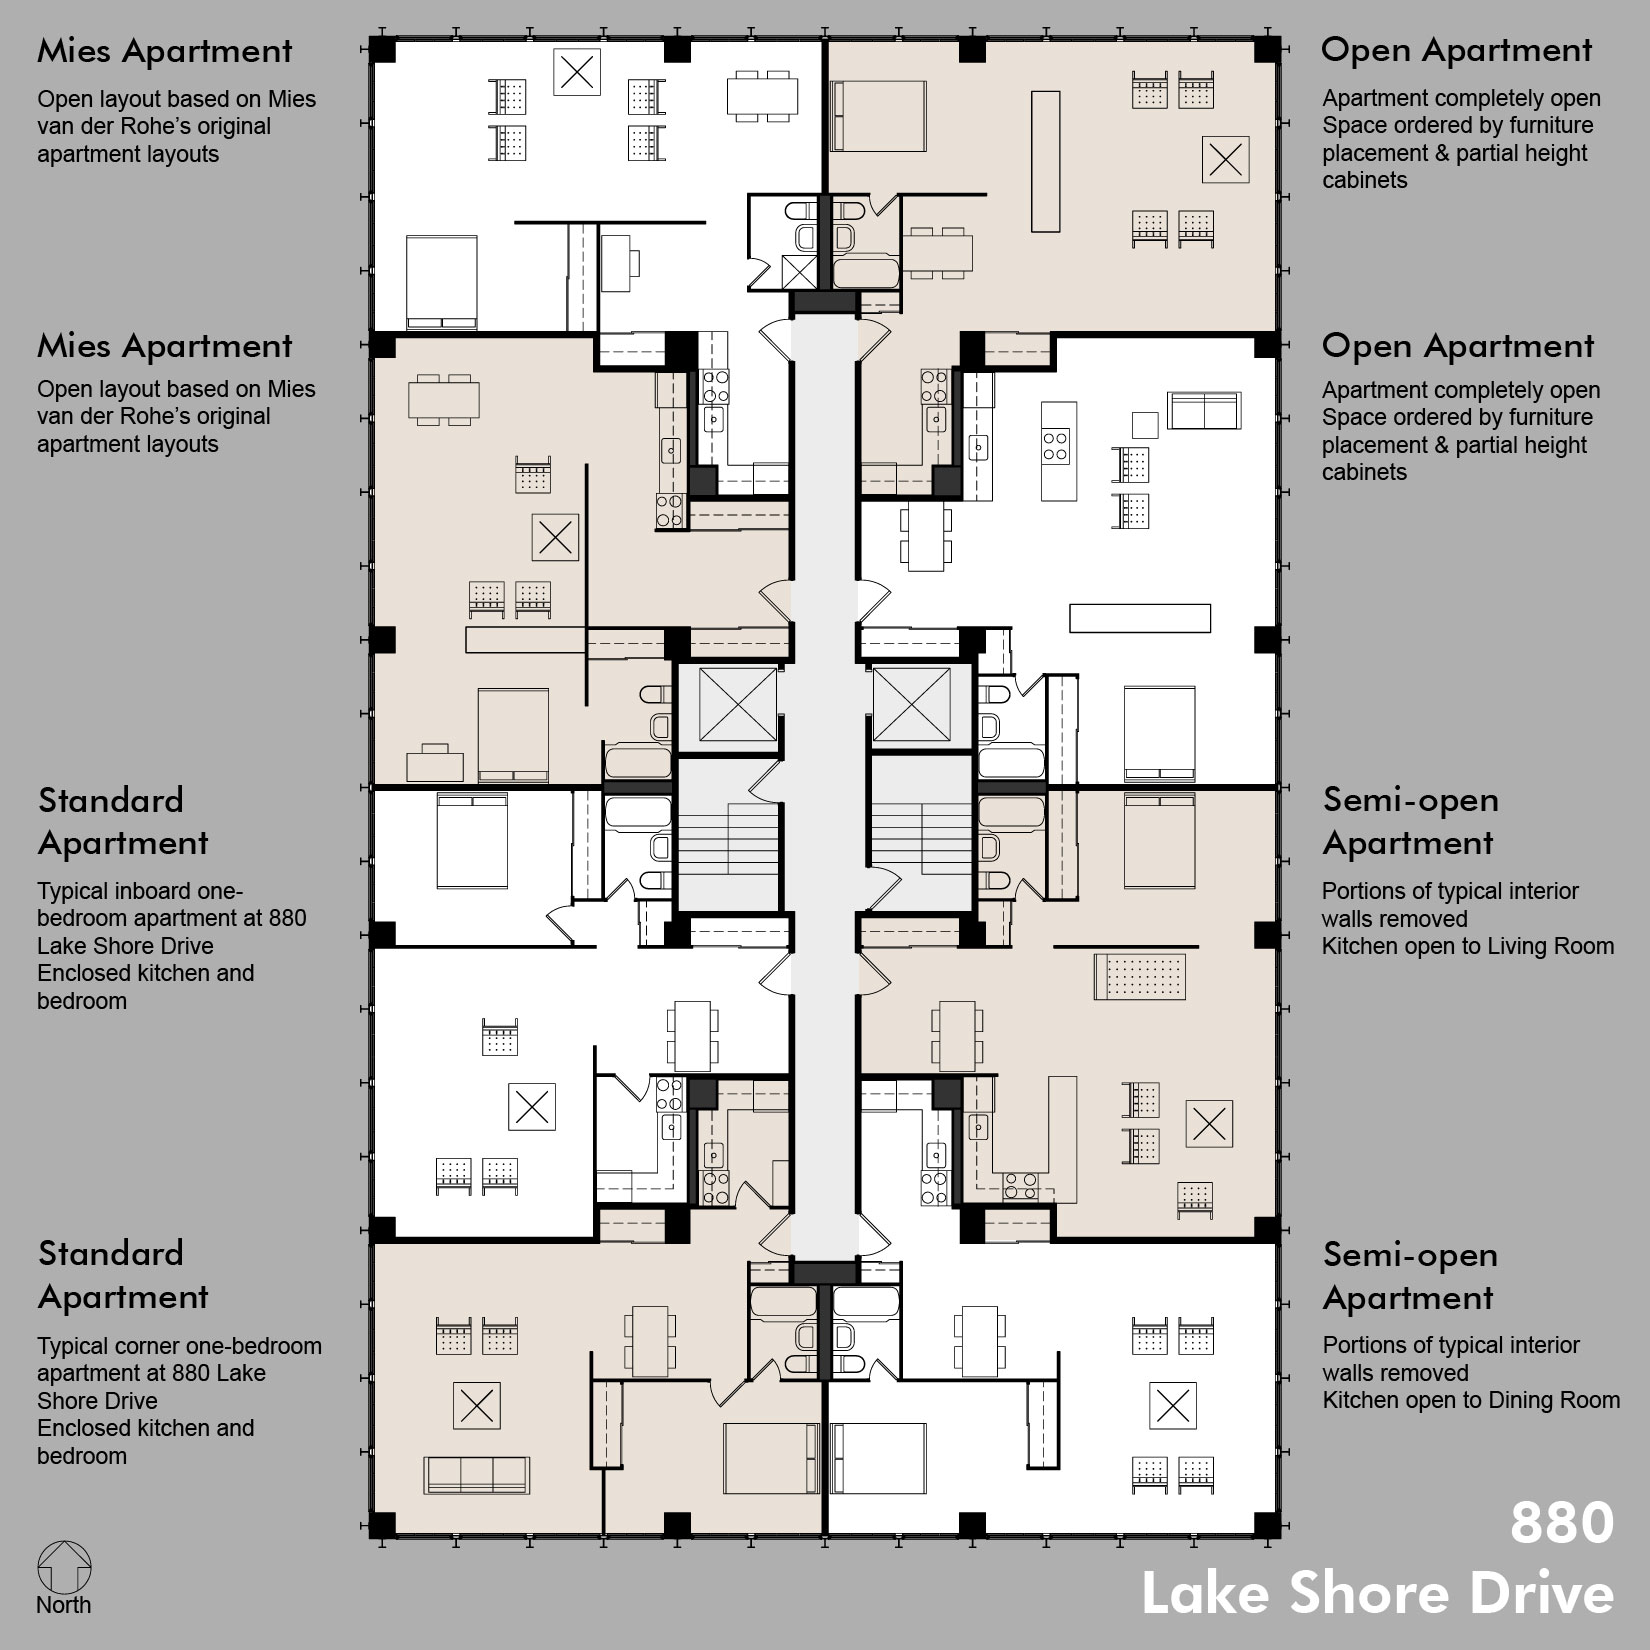 880 floor plans including standard apt - Architectural plan of two bedroom flat with dining room ...